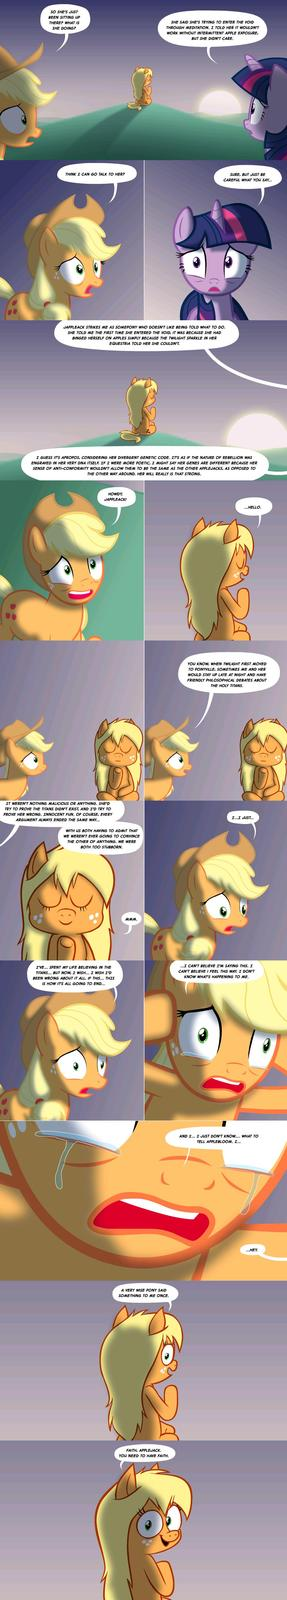 Japplejack: Chapter III - Part 3